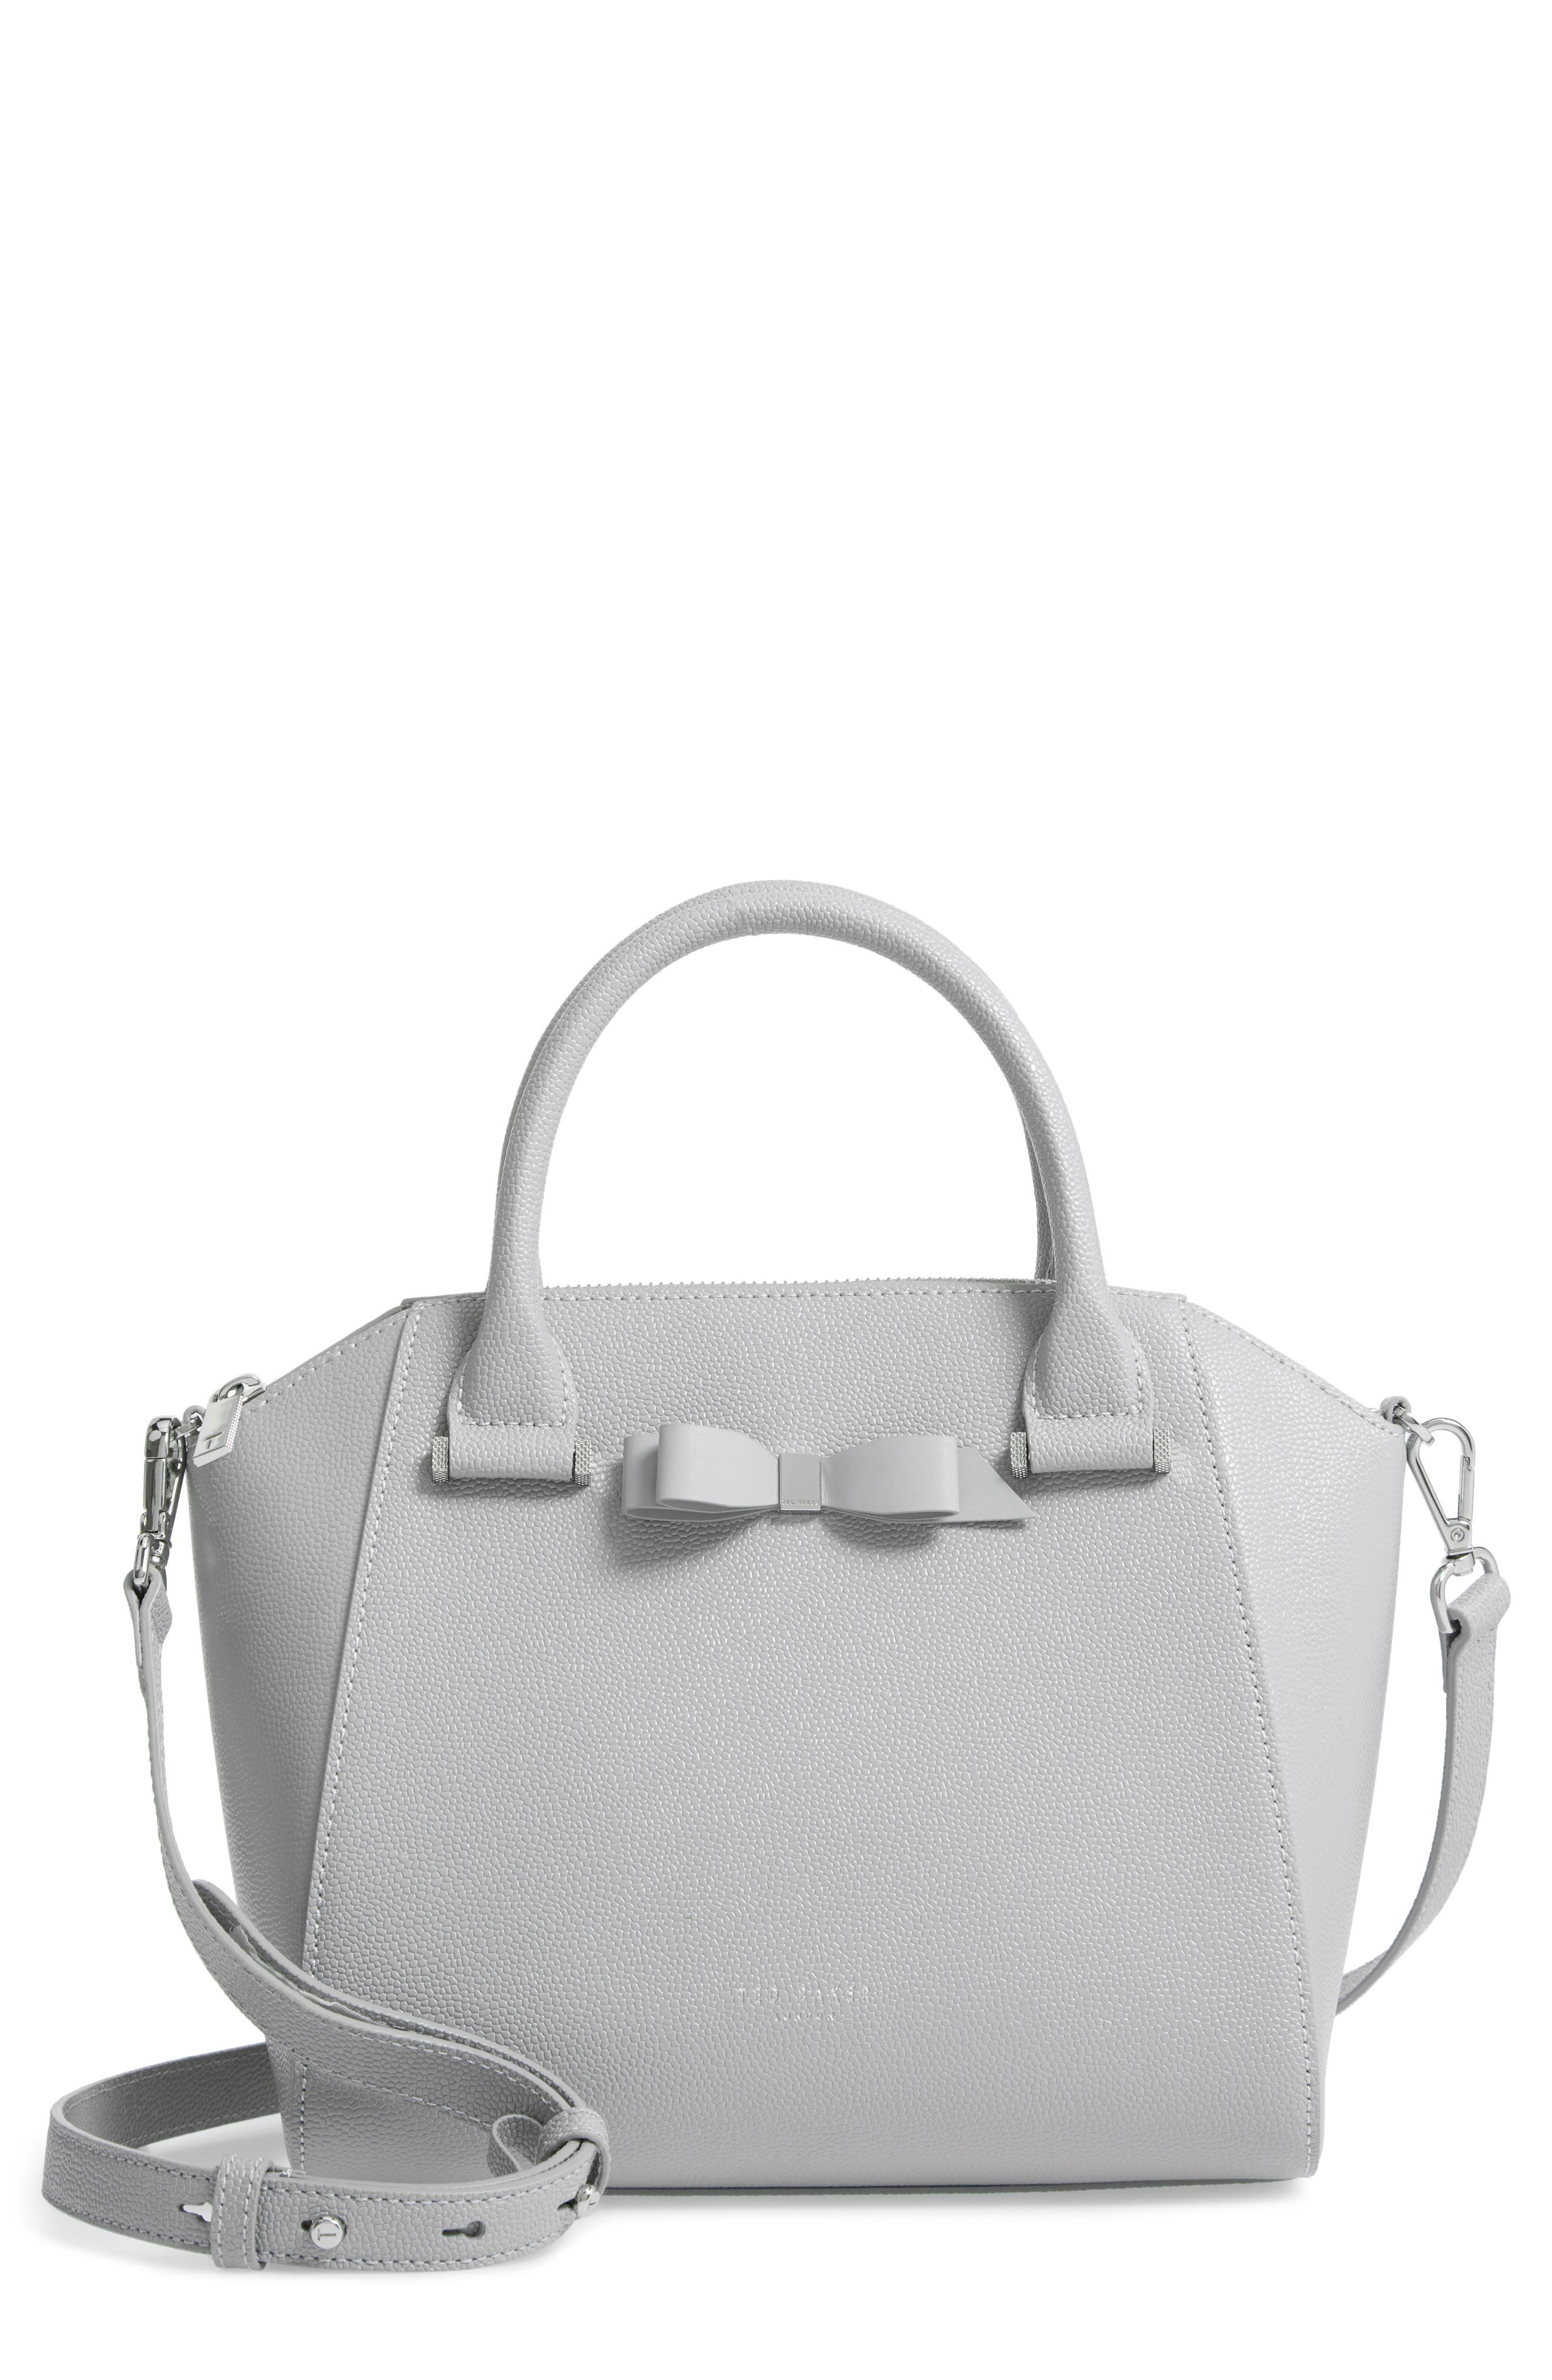 TED BAKER LONDON,                             Janne Bow Leather Tote,                             Main thumbnail 1, color,                             GREY